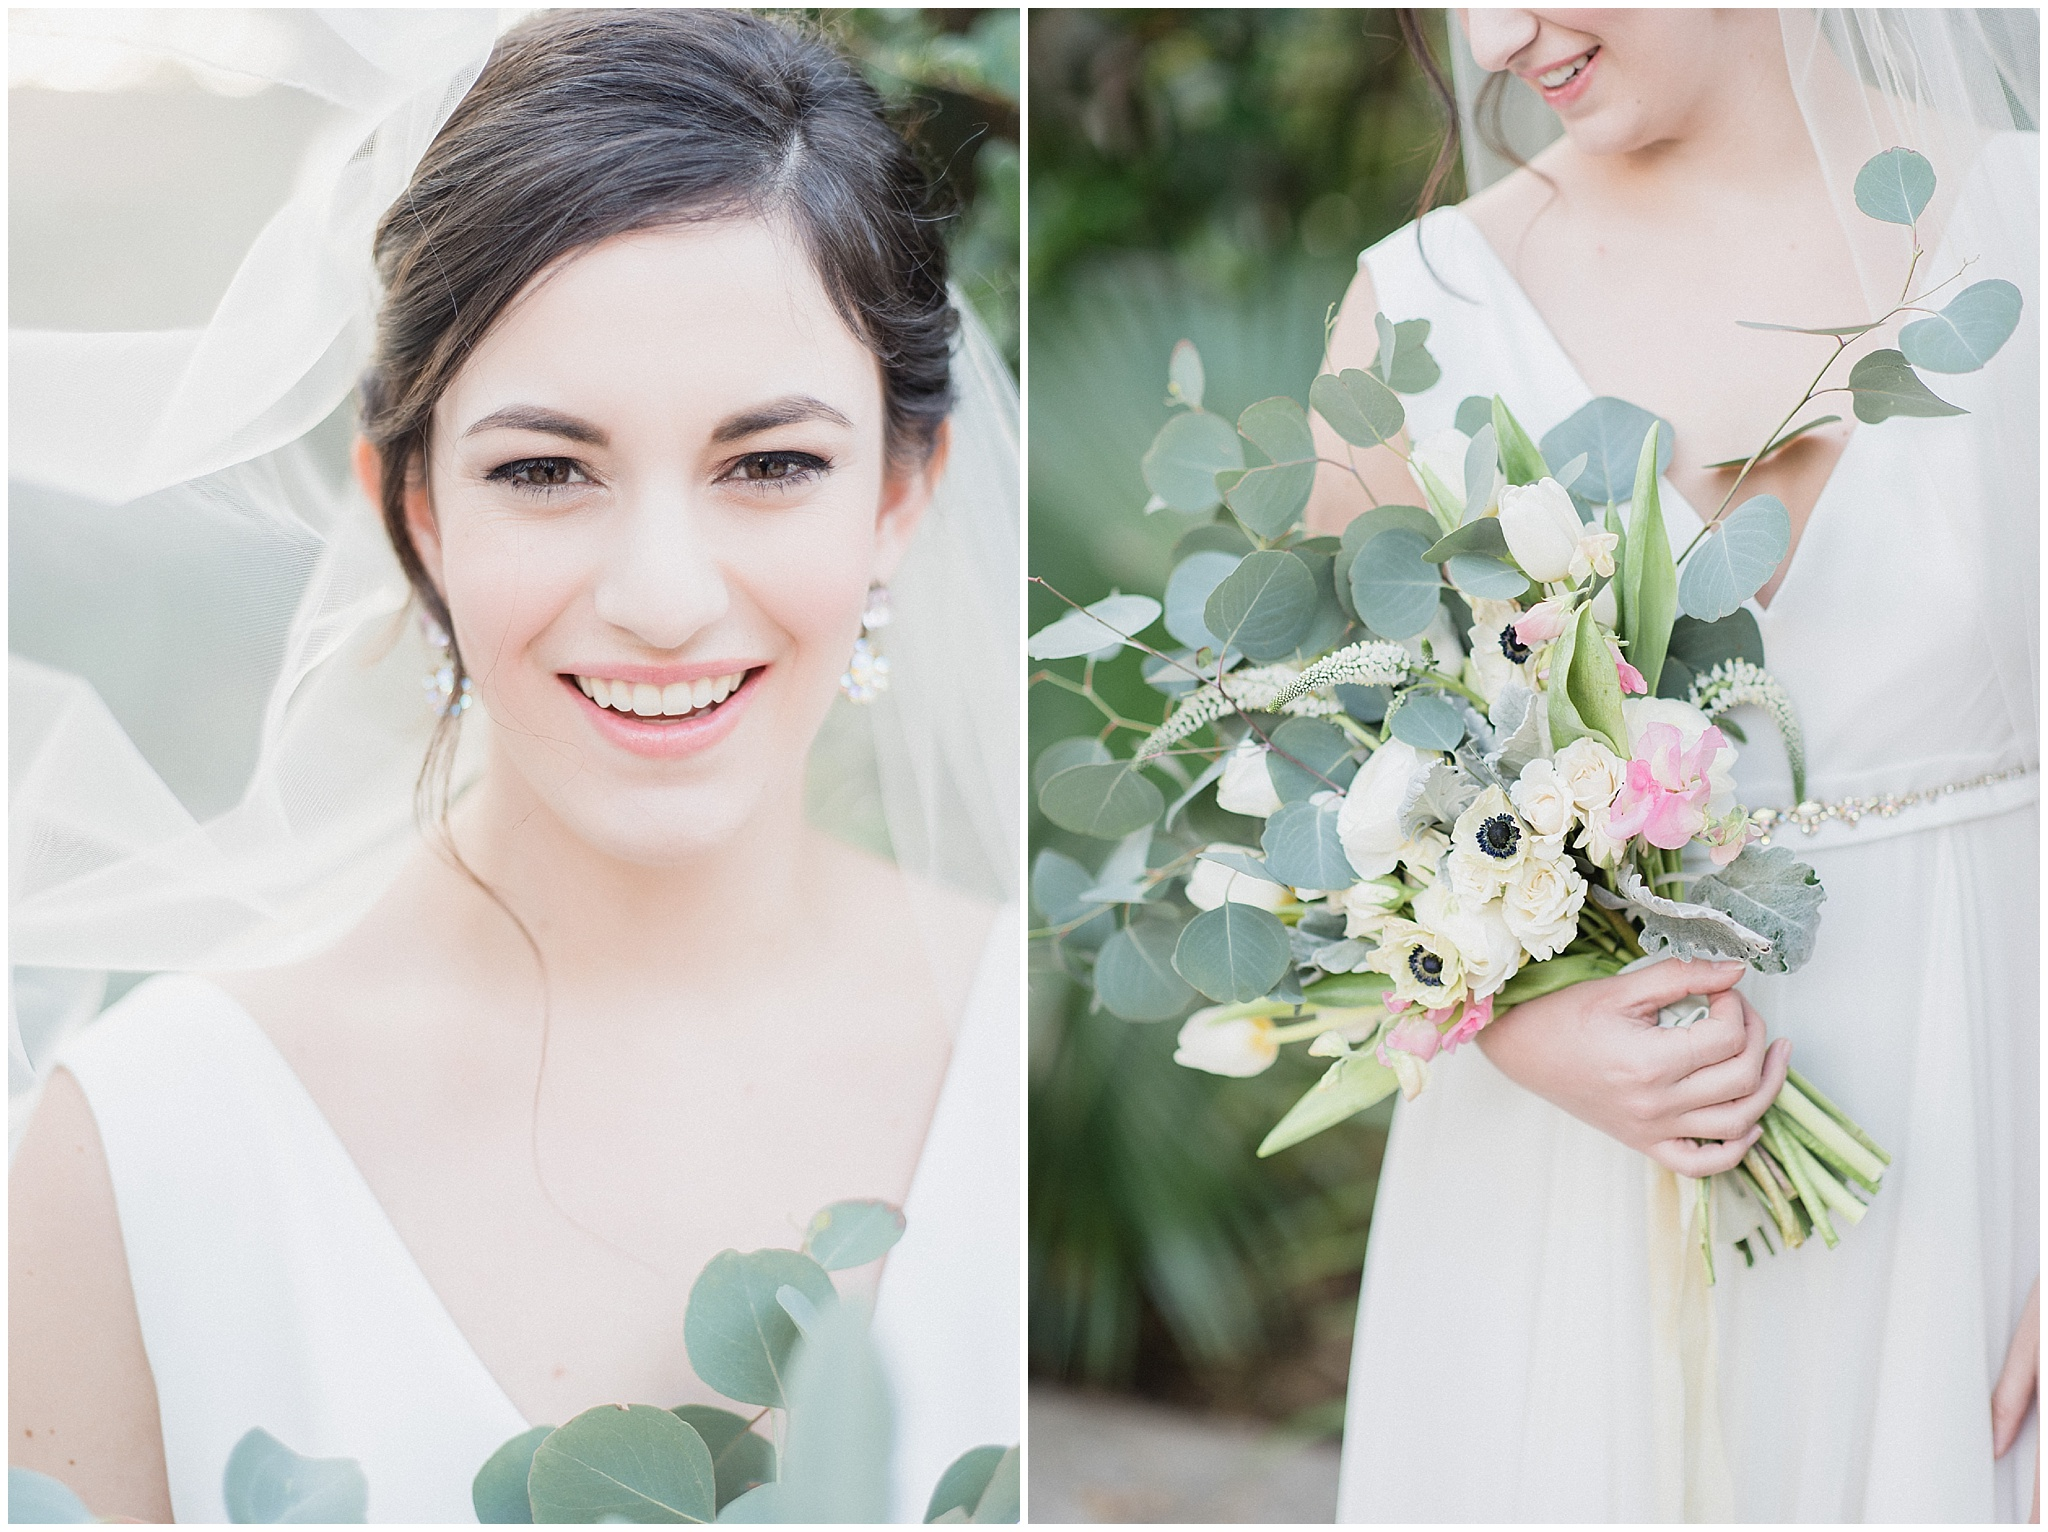 Spring Bridal Session Inspiration | Jenn Kavanagh Photography | Confête Events